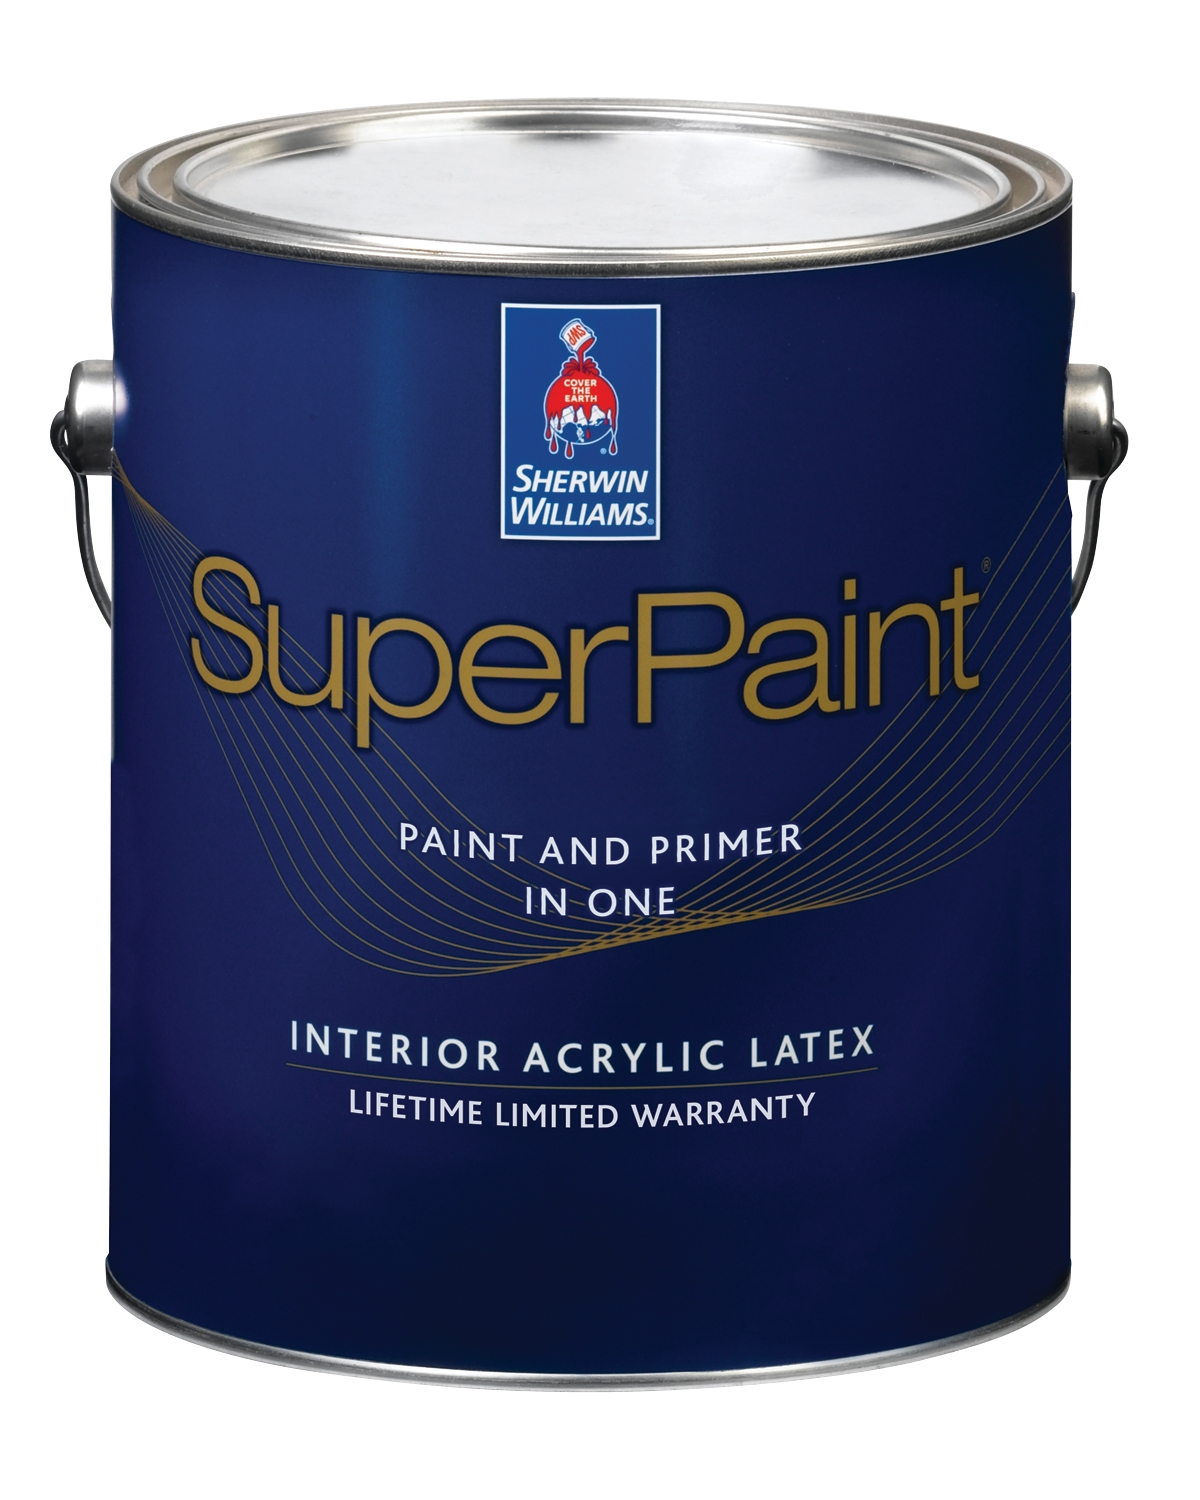 Sherwin Williams Superpaint Exterior Acrylic Latex Paint ...